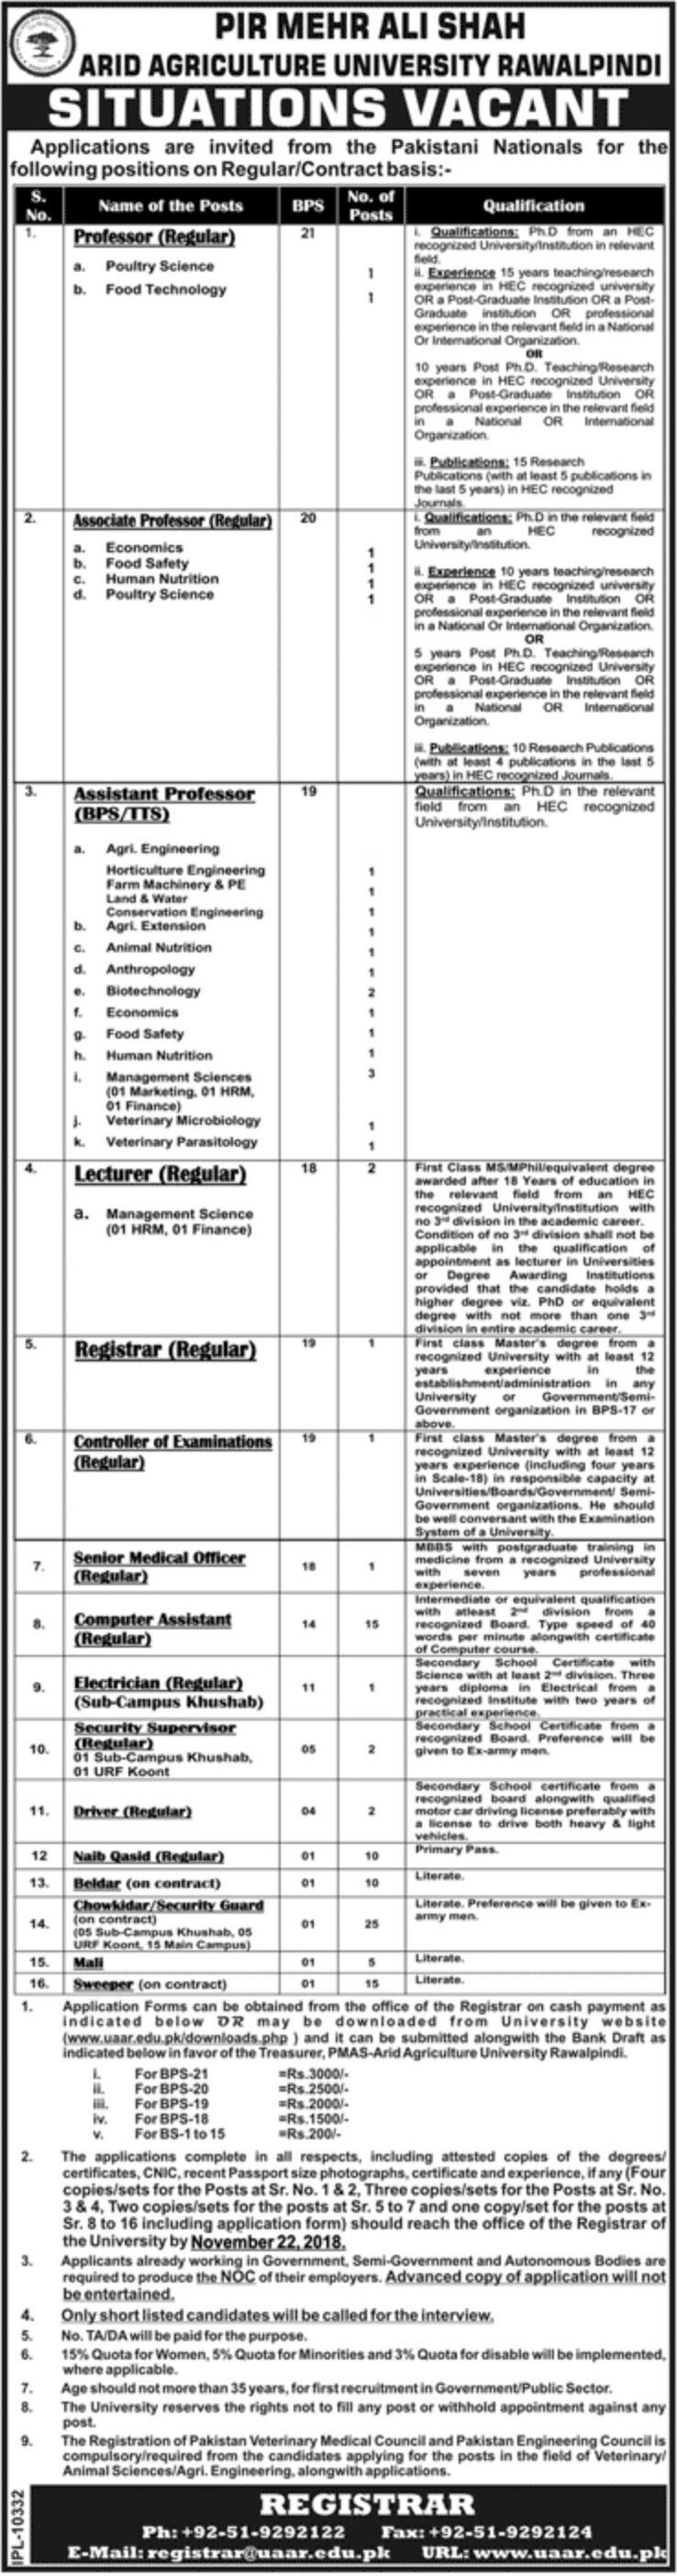 Arid Agriculture University Rawalpindi Jobs Latest 2018